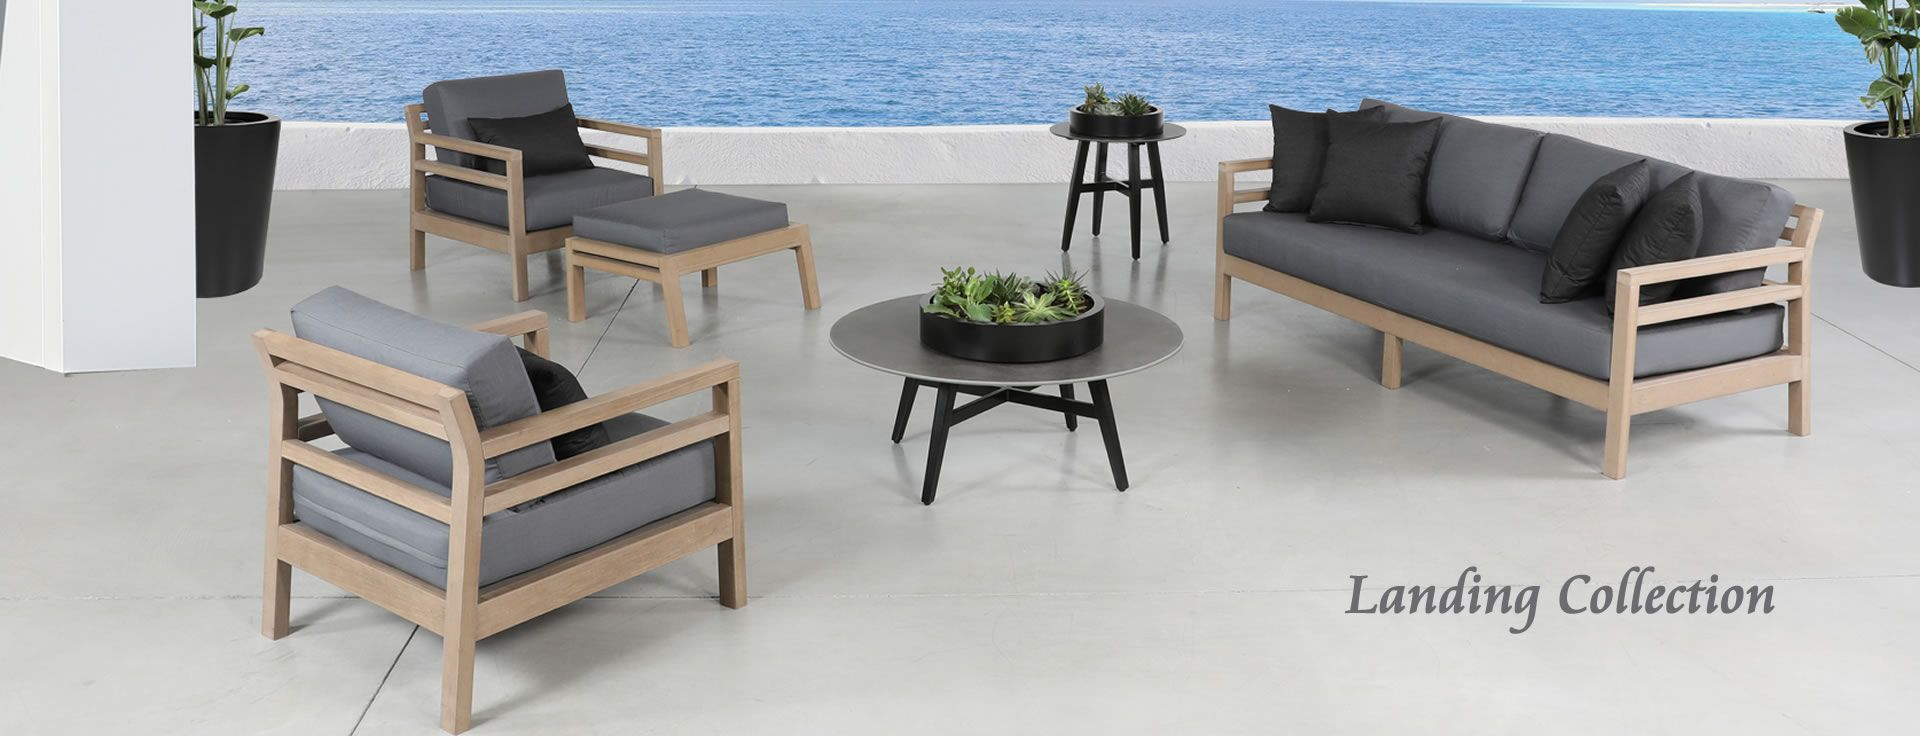 Landing Seating Collection Sherris